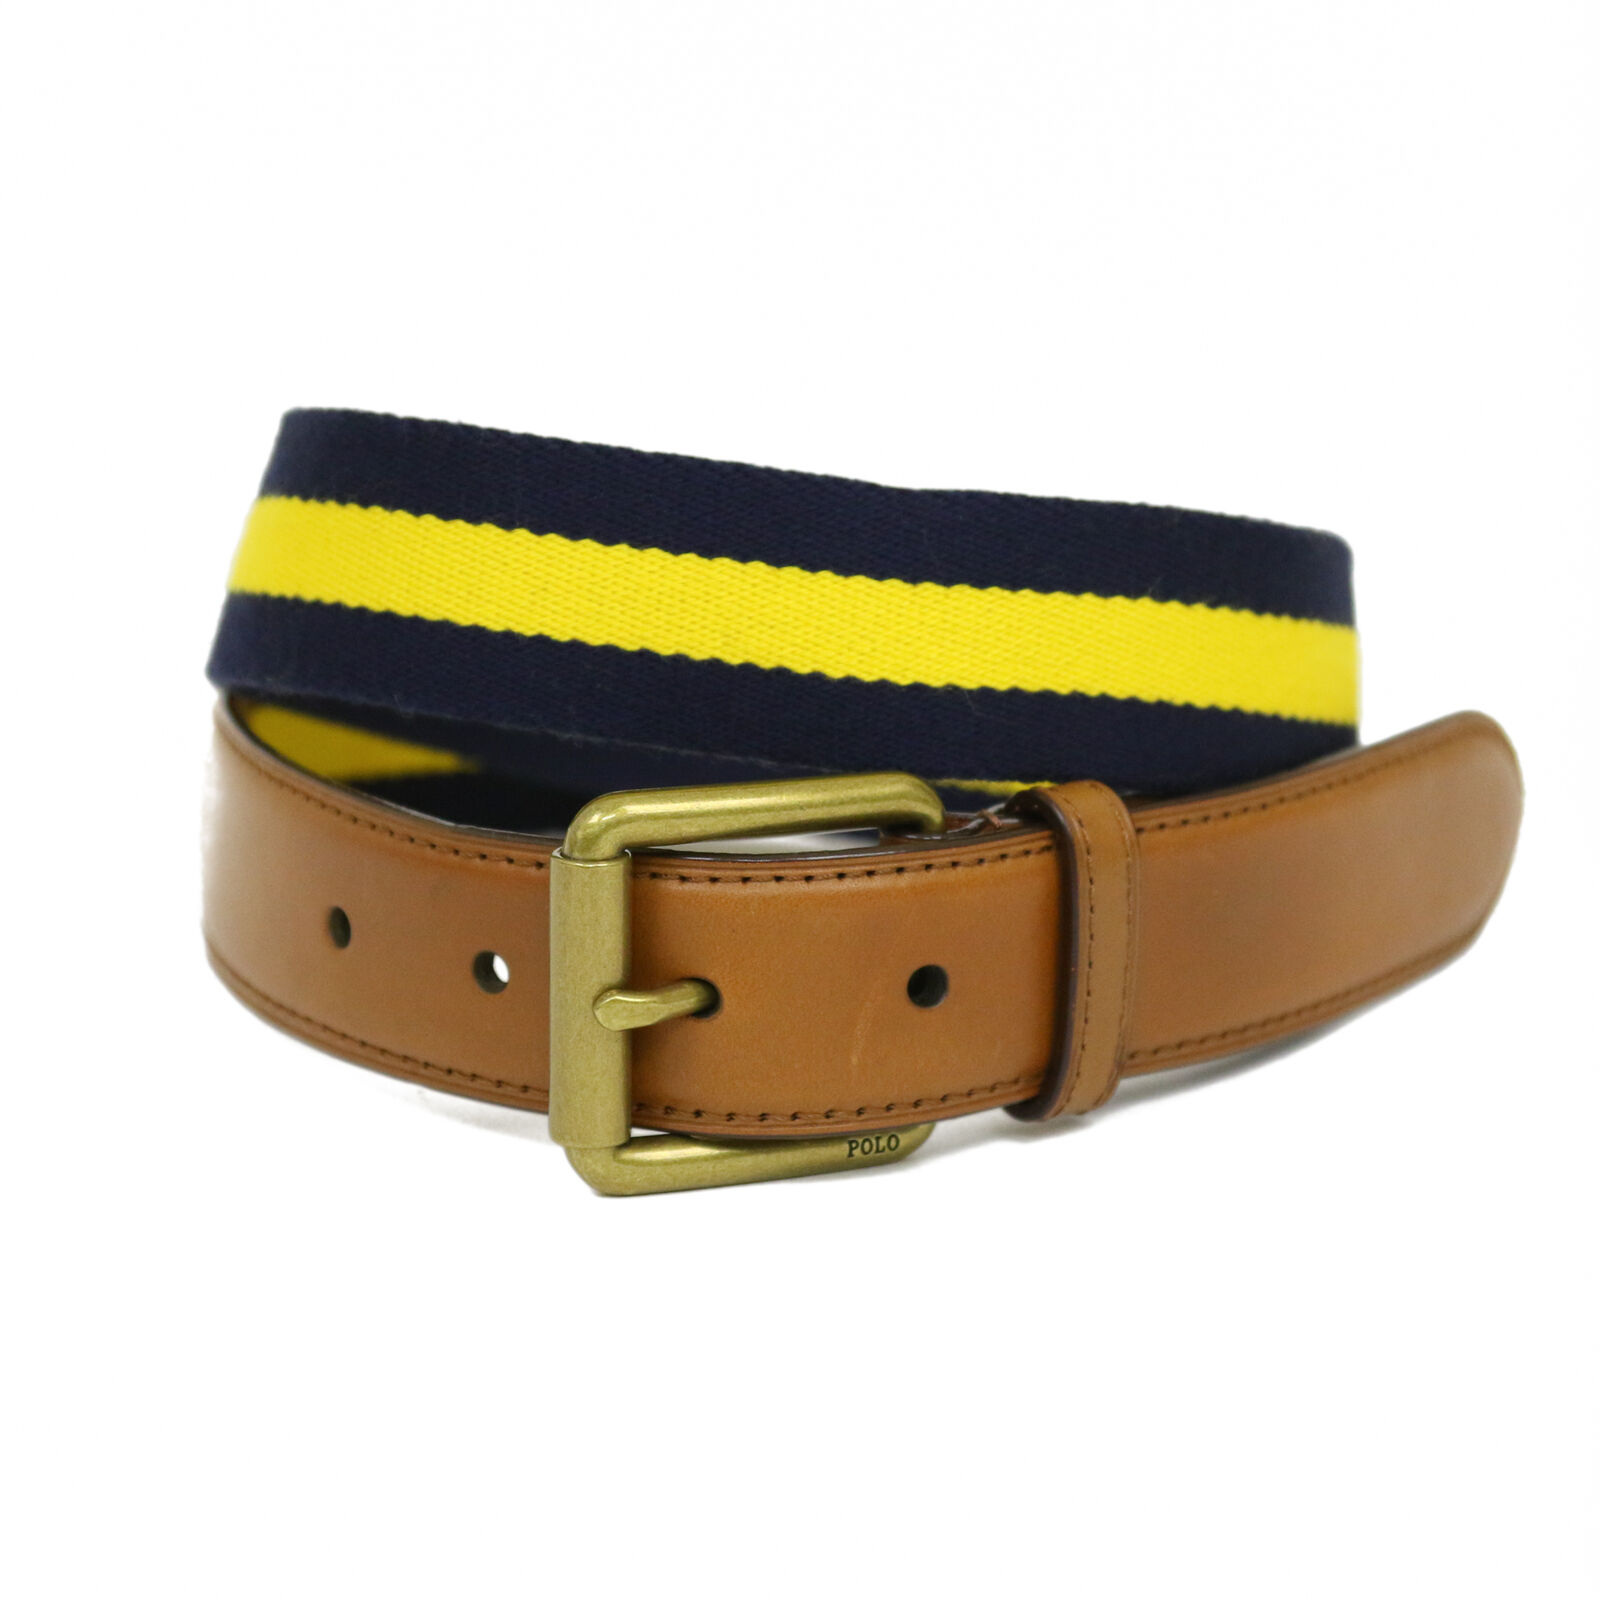 NEW DEAL COTTON BELT NAVY ONE SIZE FITS ALL